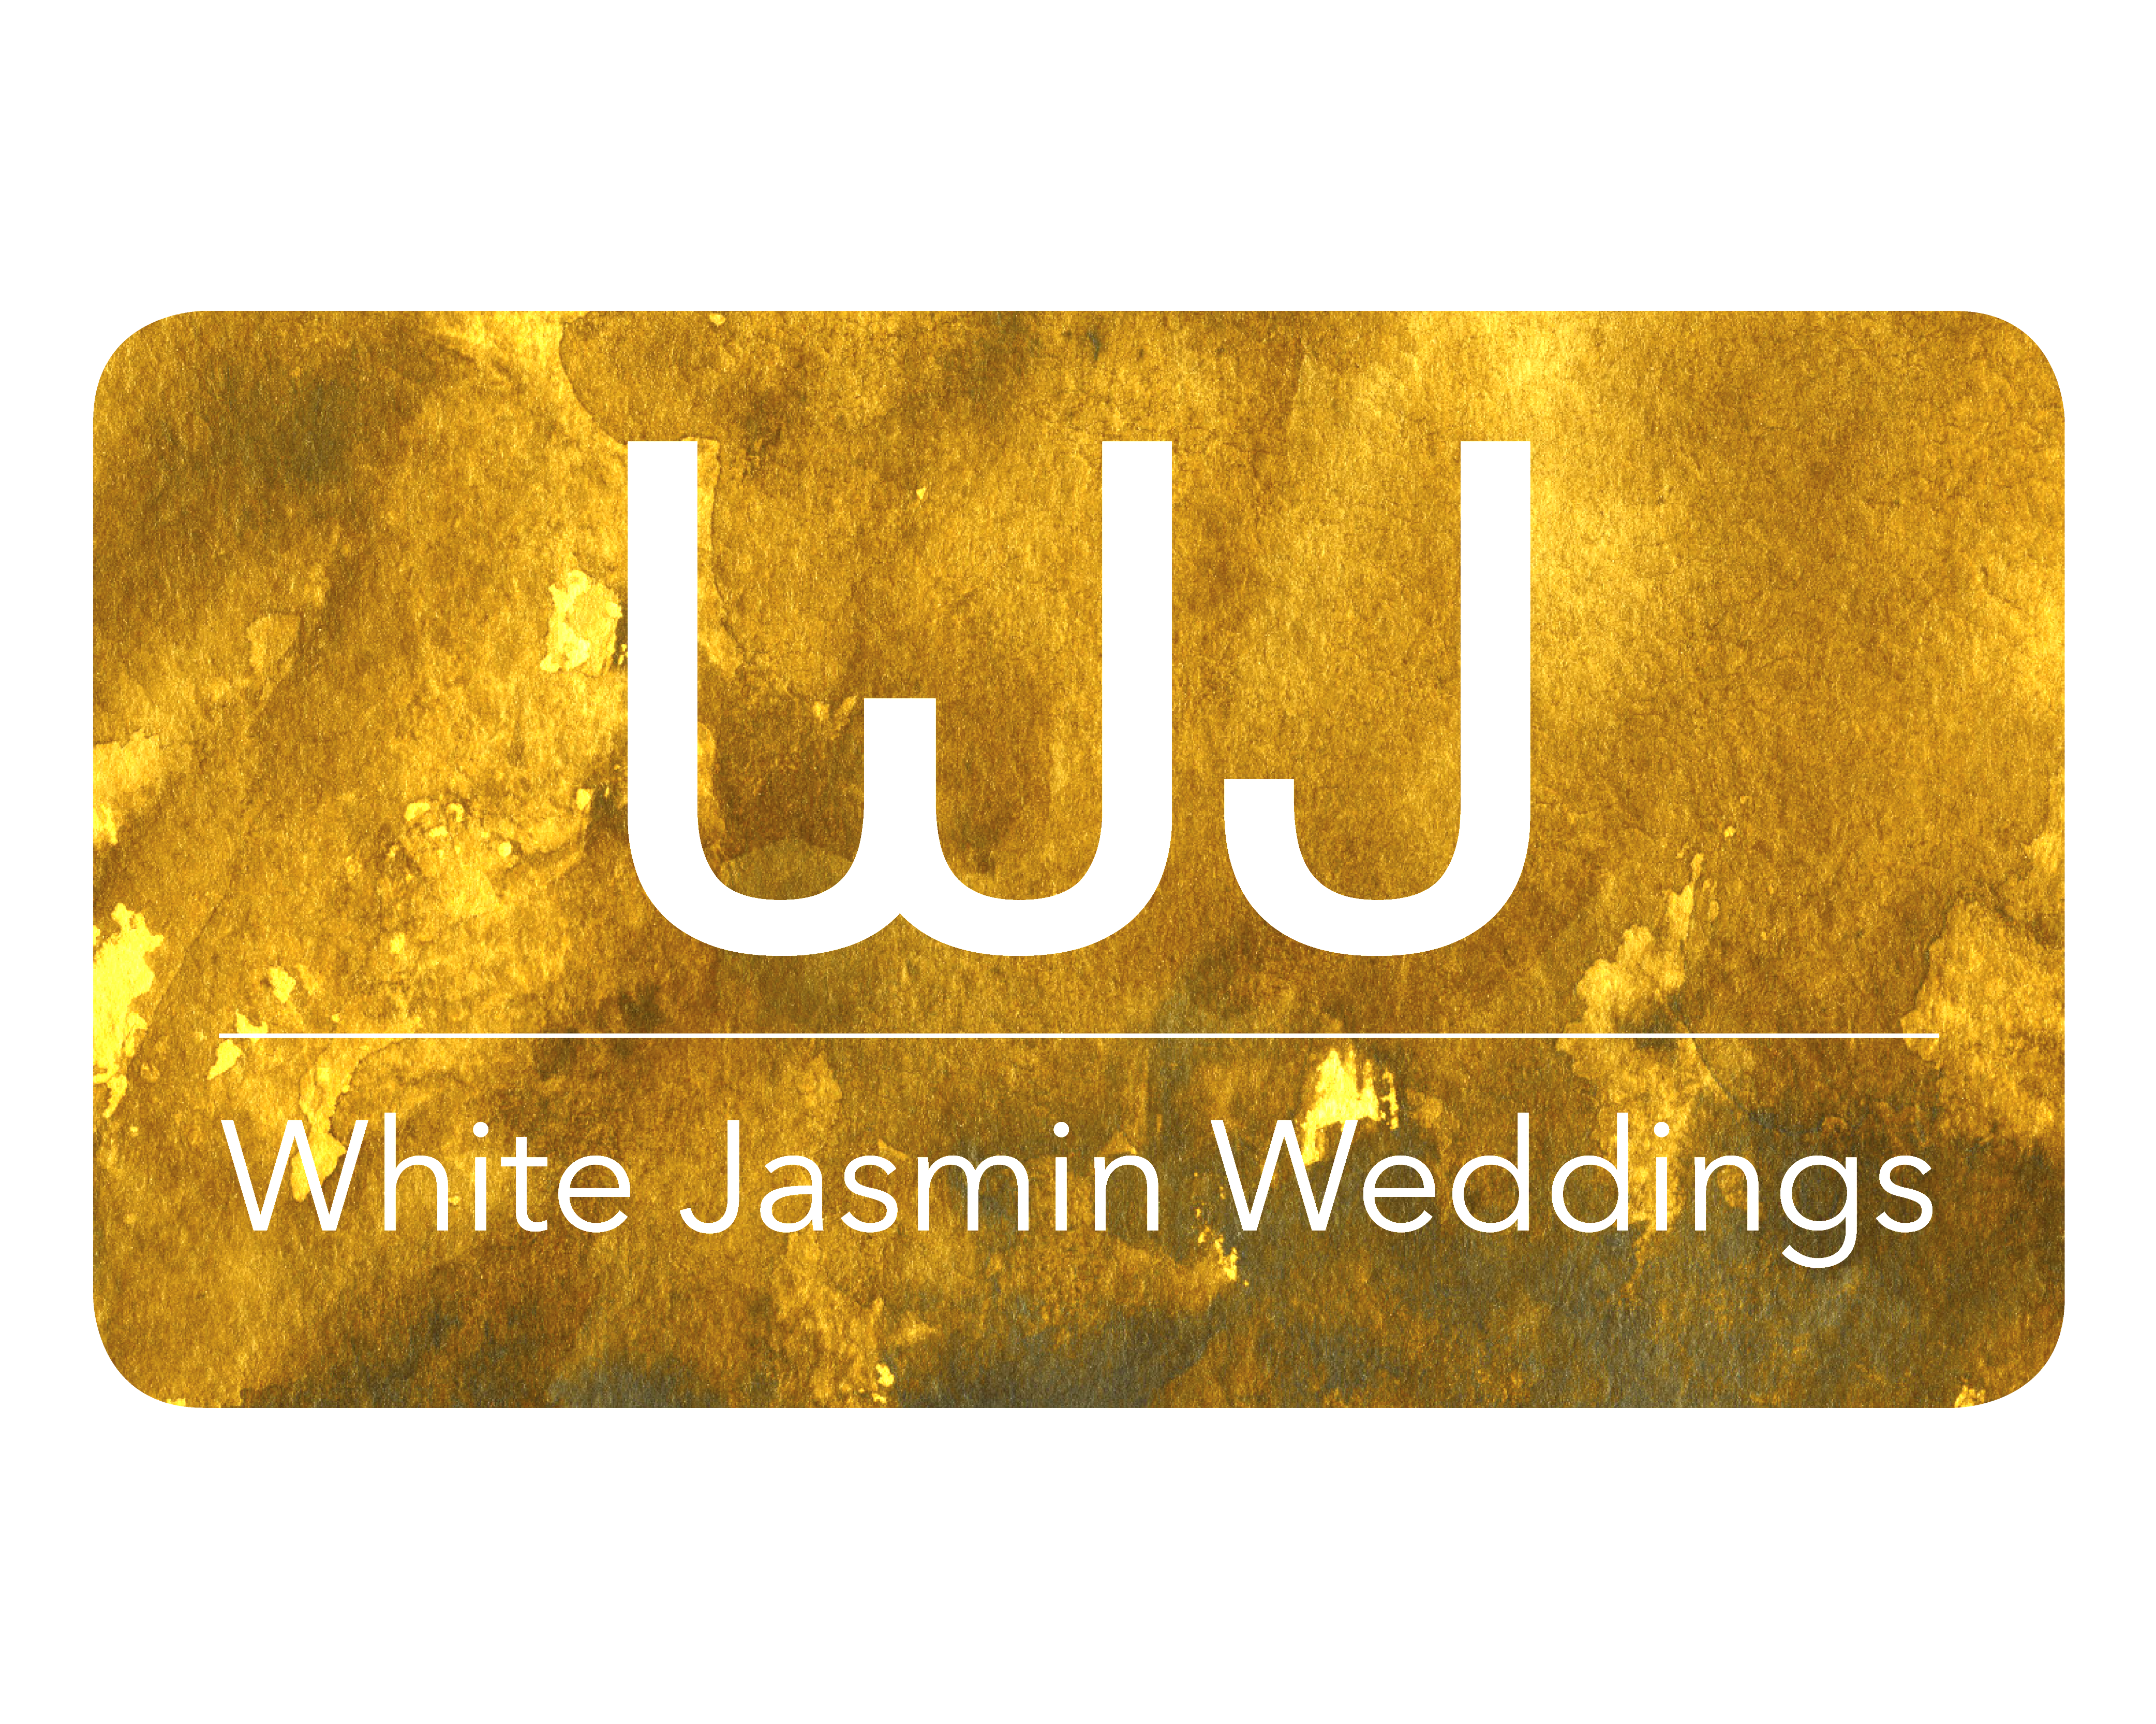 White Jasmin Weddings